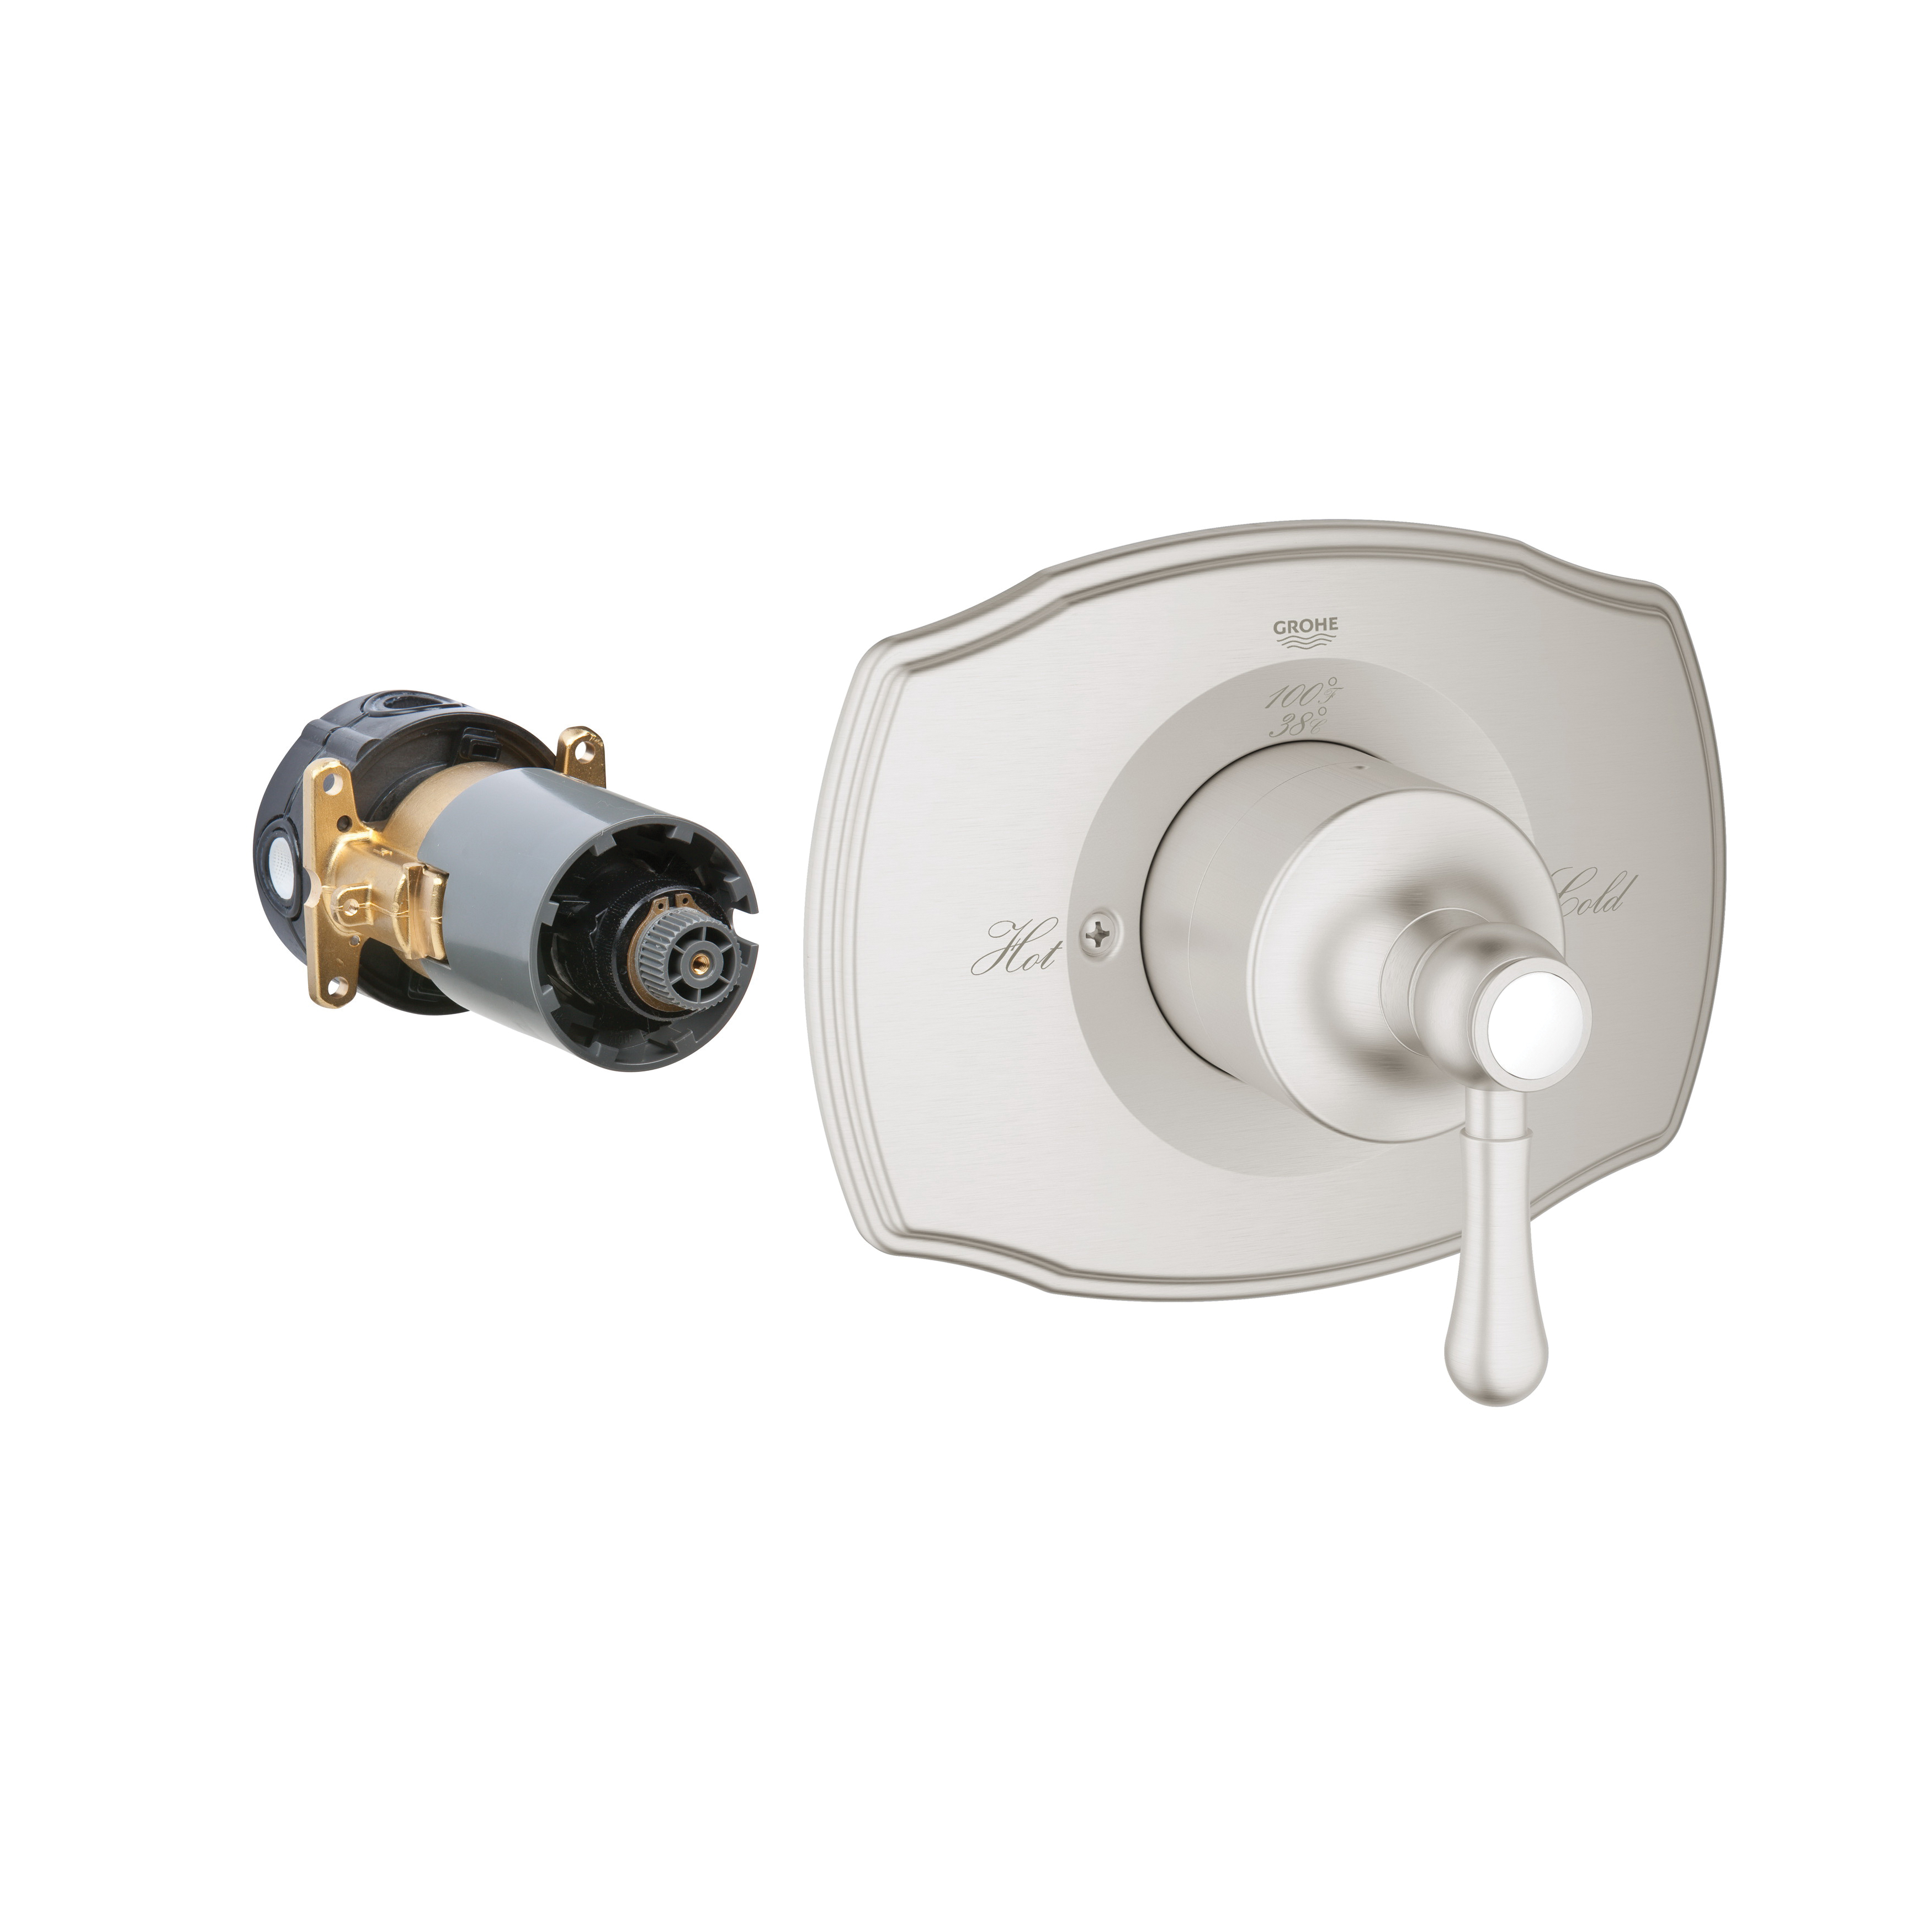 GROHE 19843EN0 Grohtherm 2000 Authentic Valve Trim, 6.1 gpm Shower, Brushed Nickel